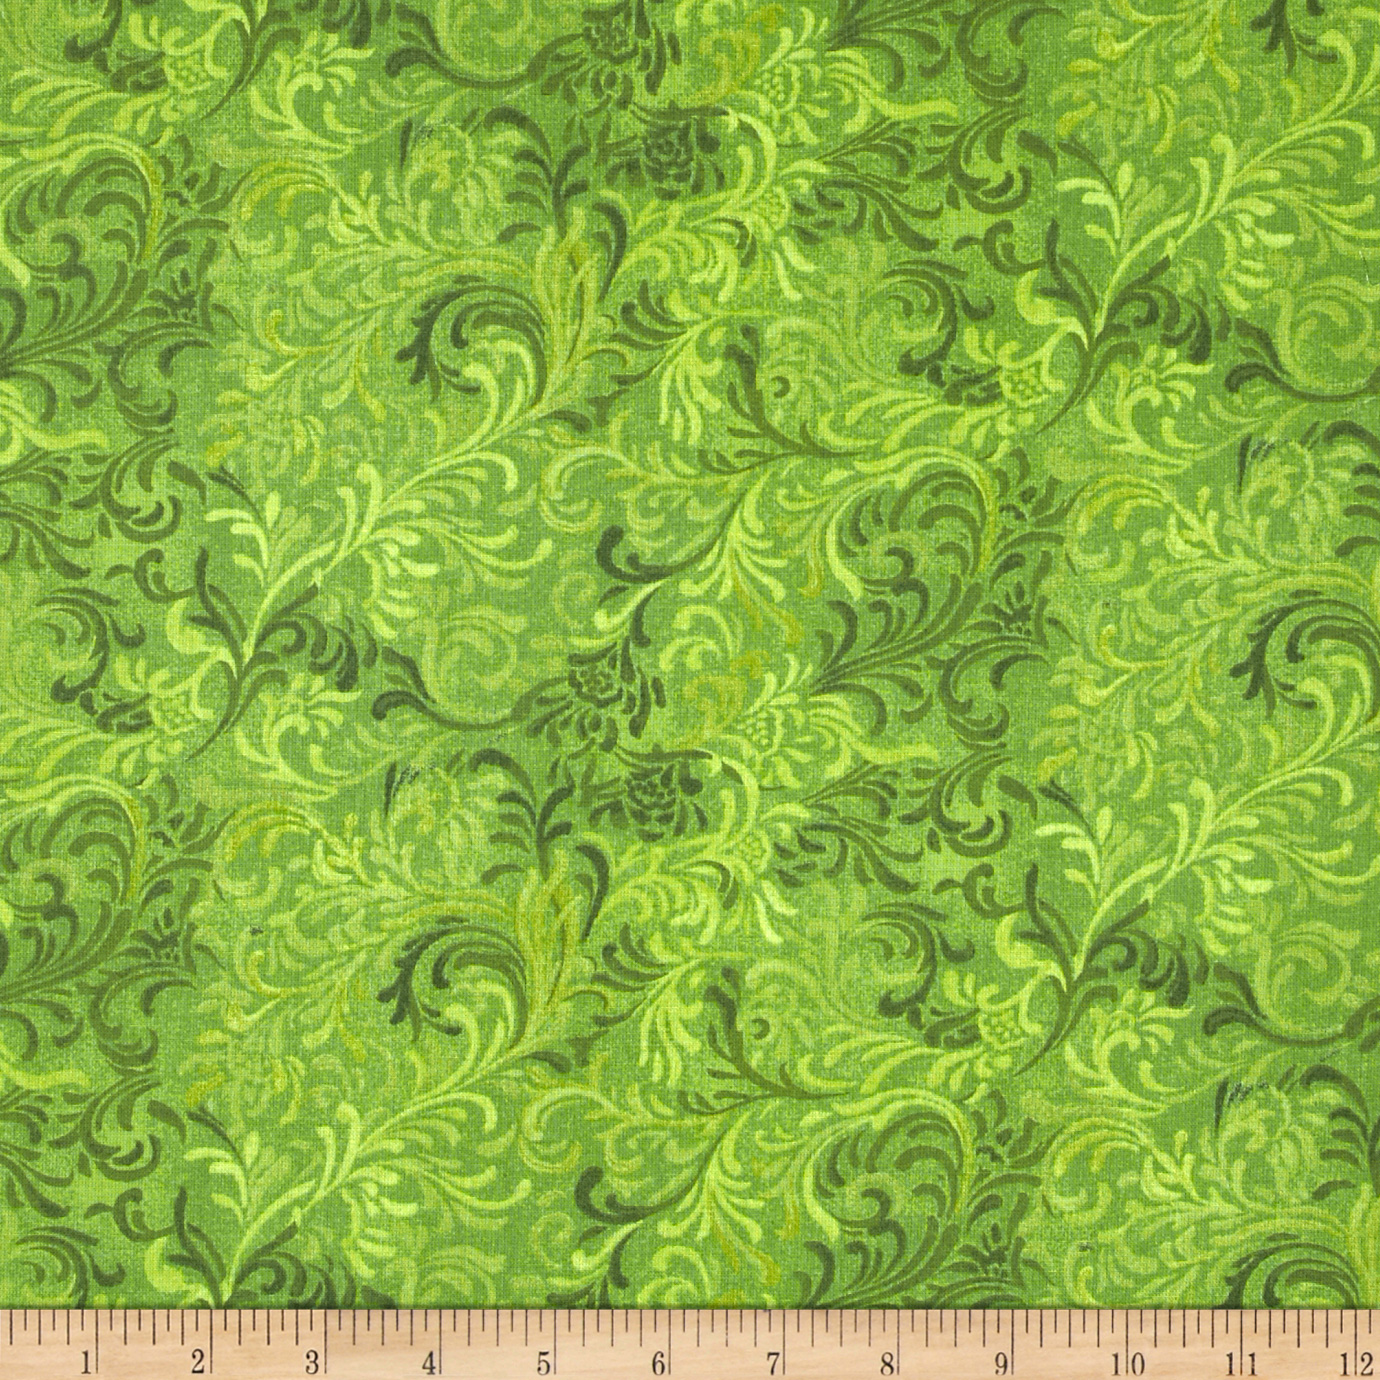 Discount Designer Fabric Quilt Backing Amp Broadcloth